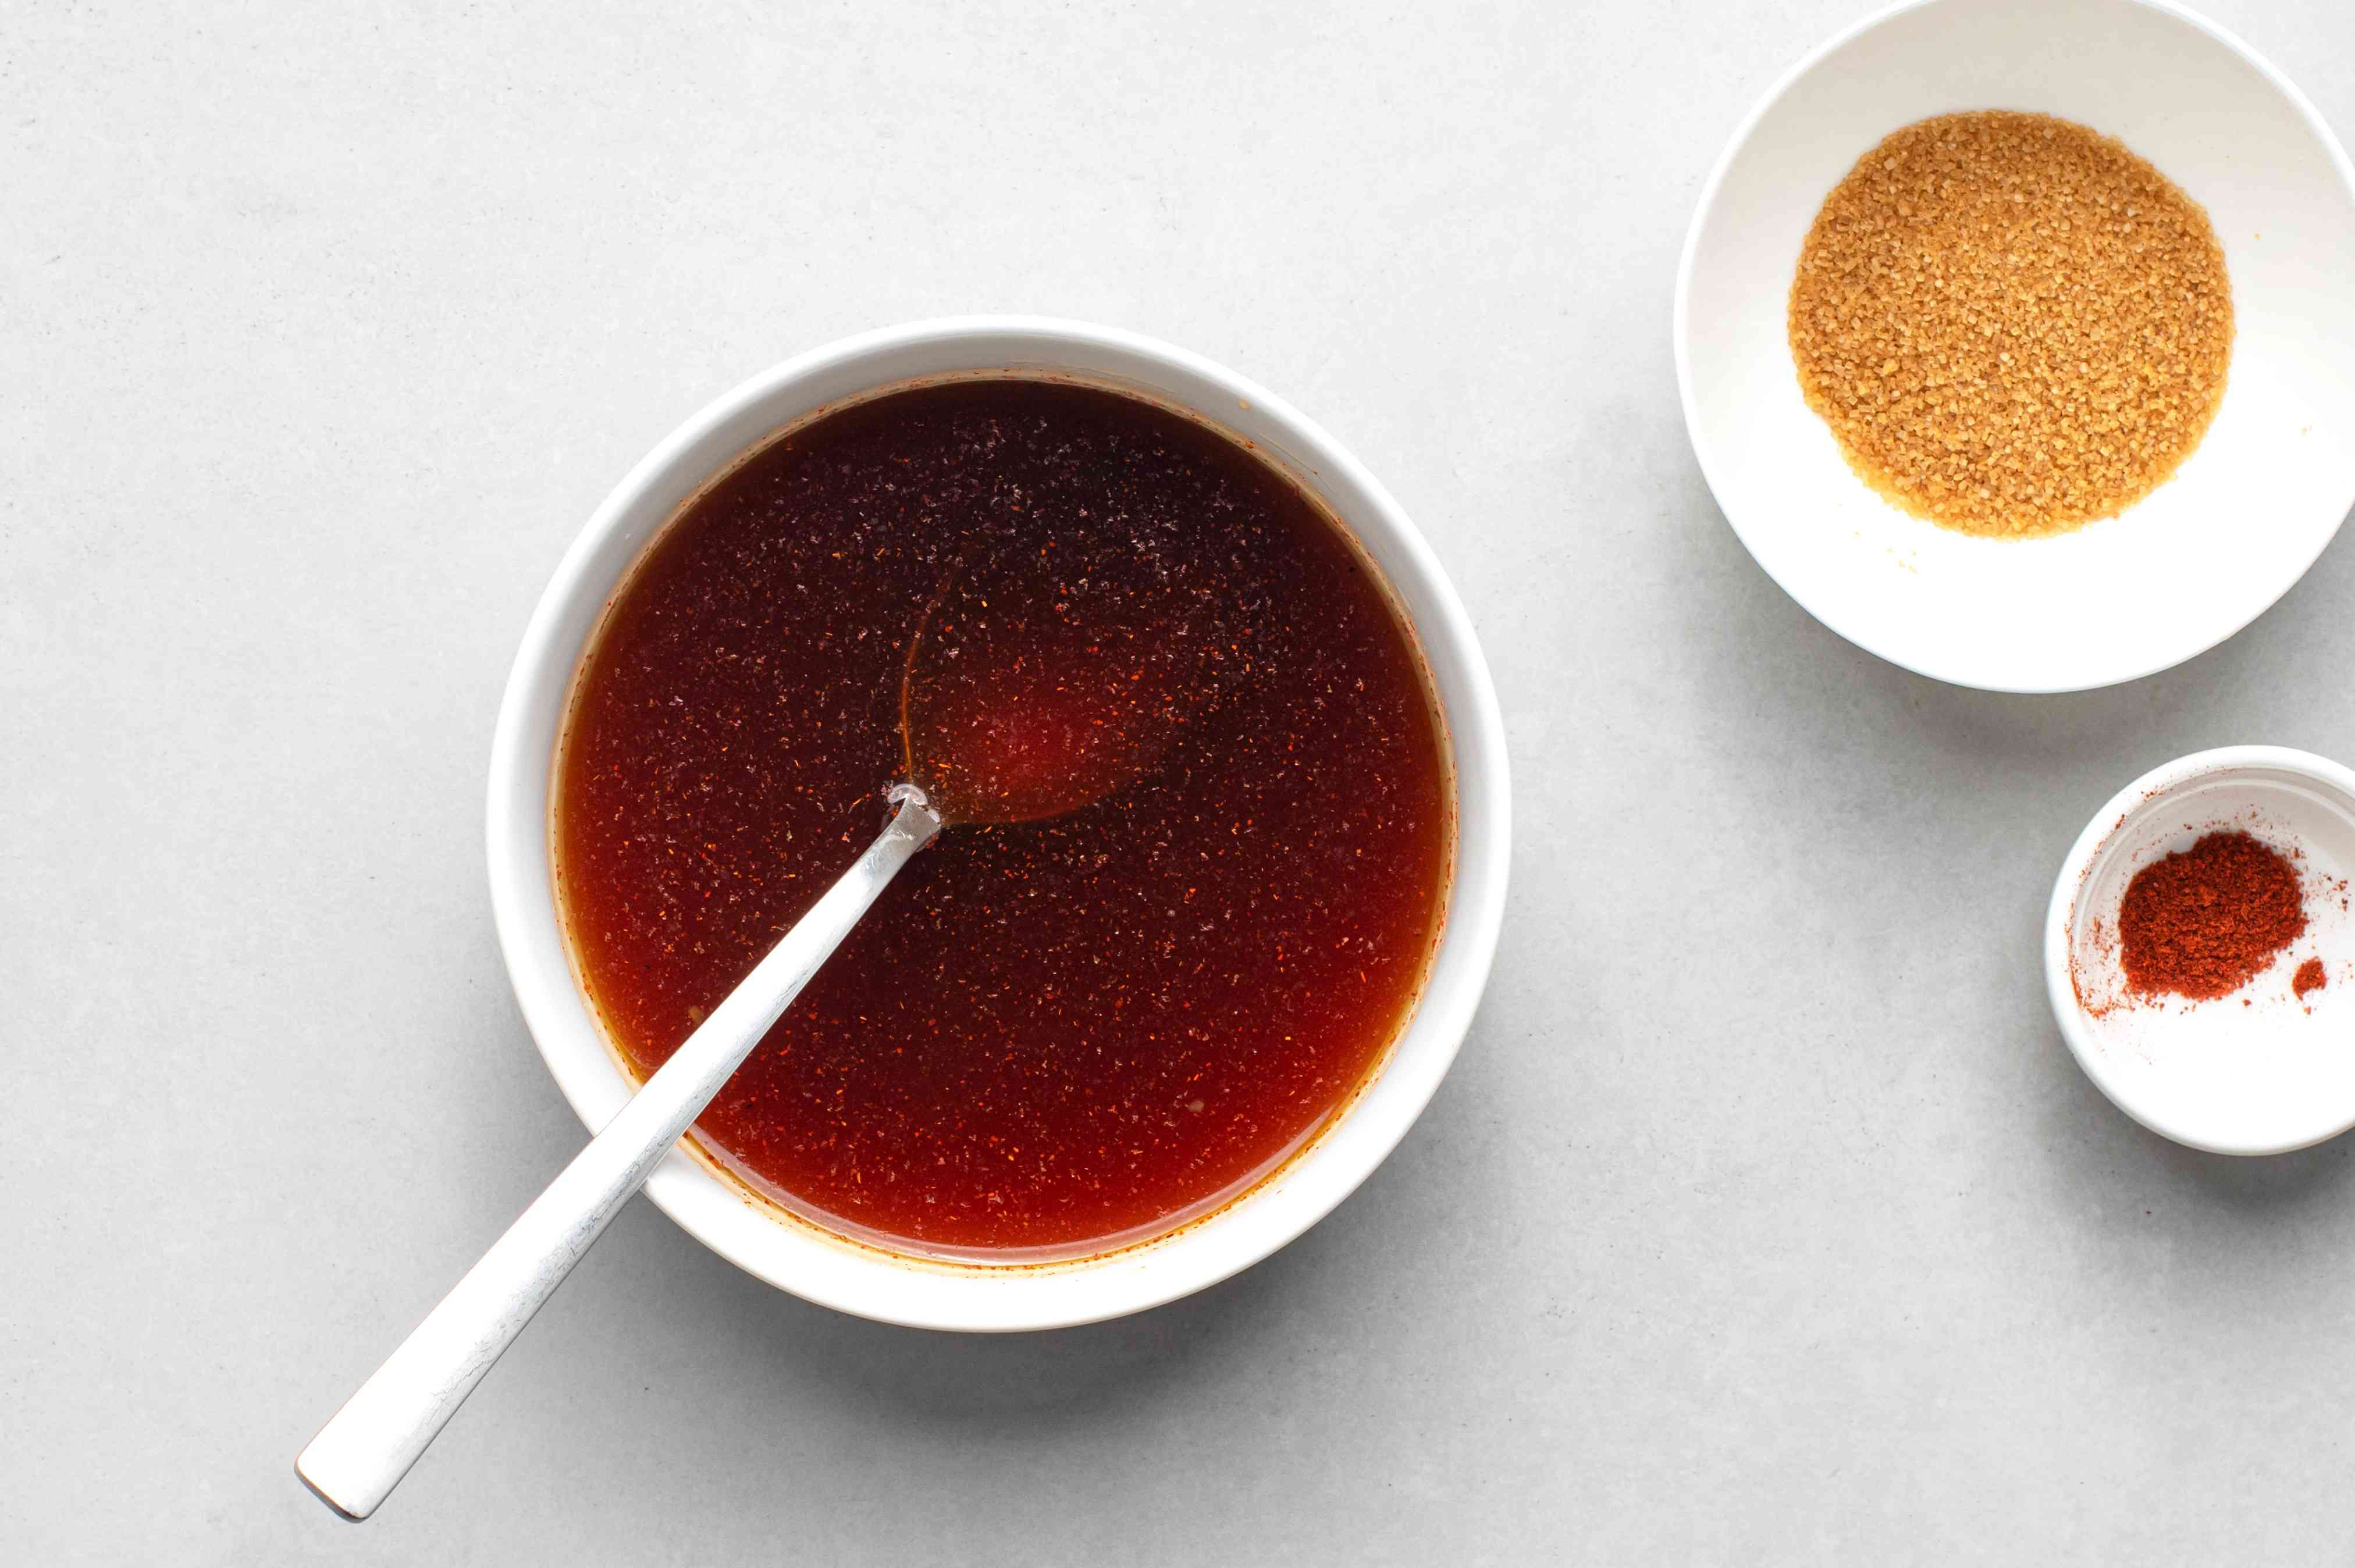 brown sugar, cayenne pepper, and the rest of the sauce ingredients in a bowl